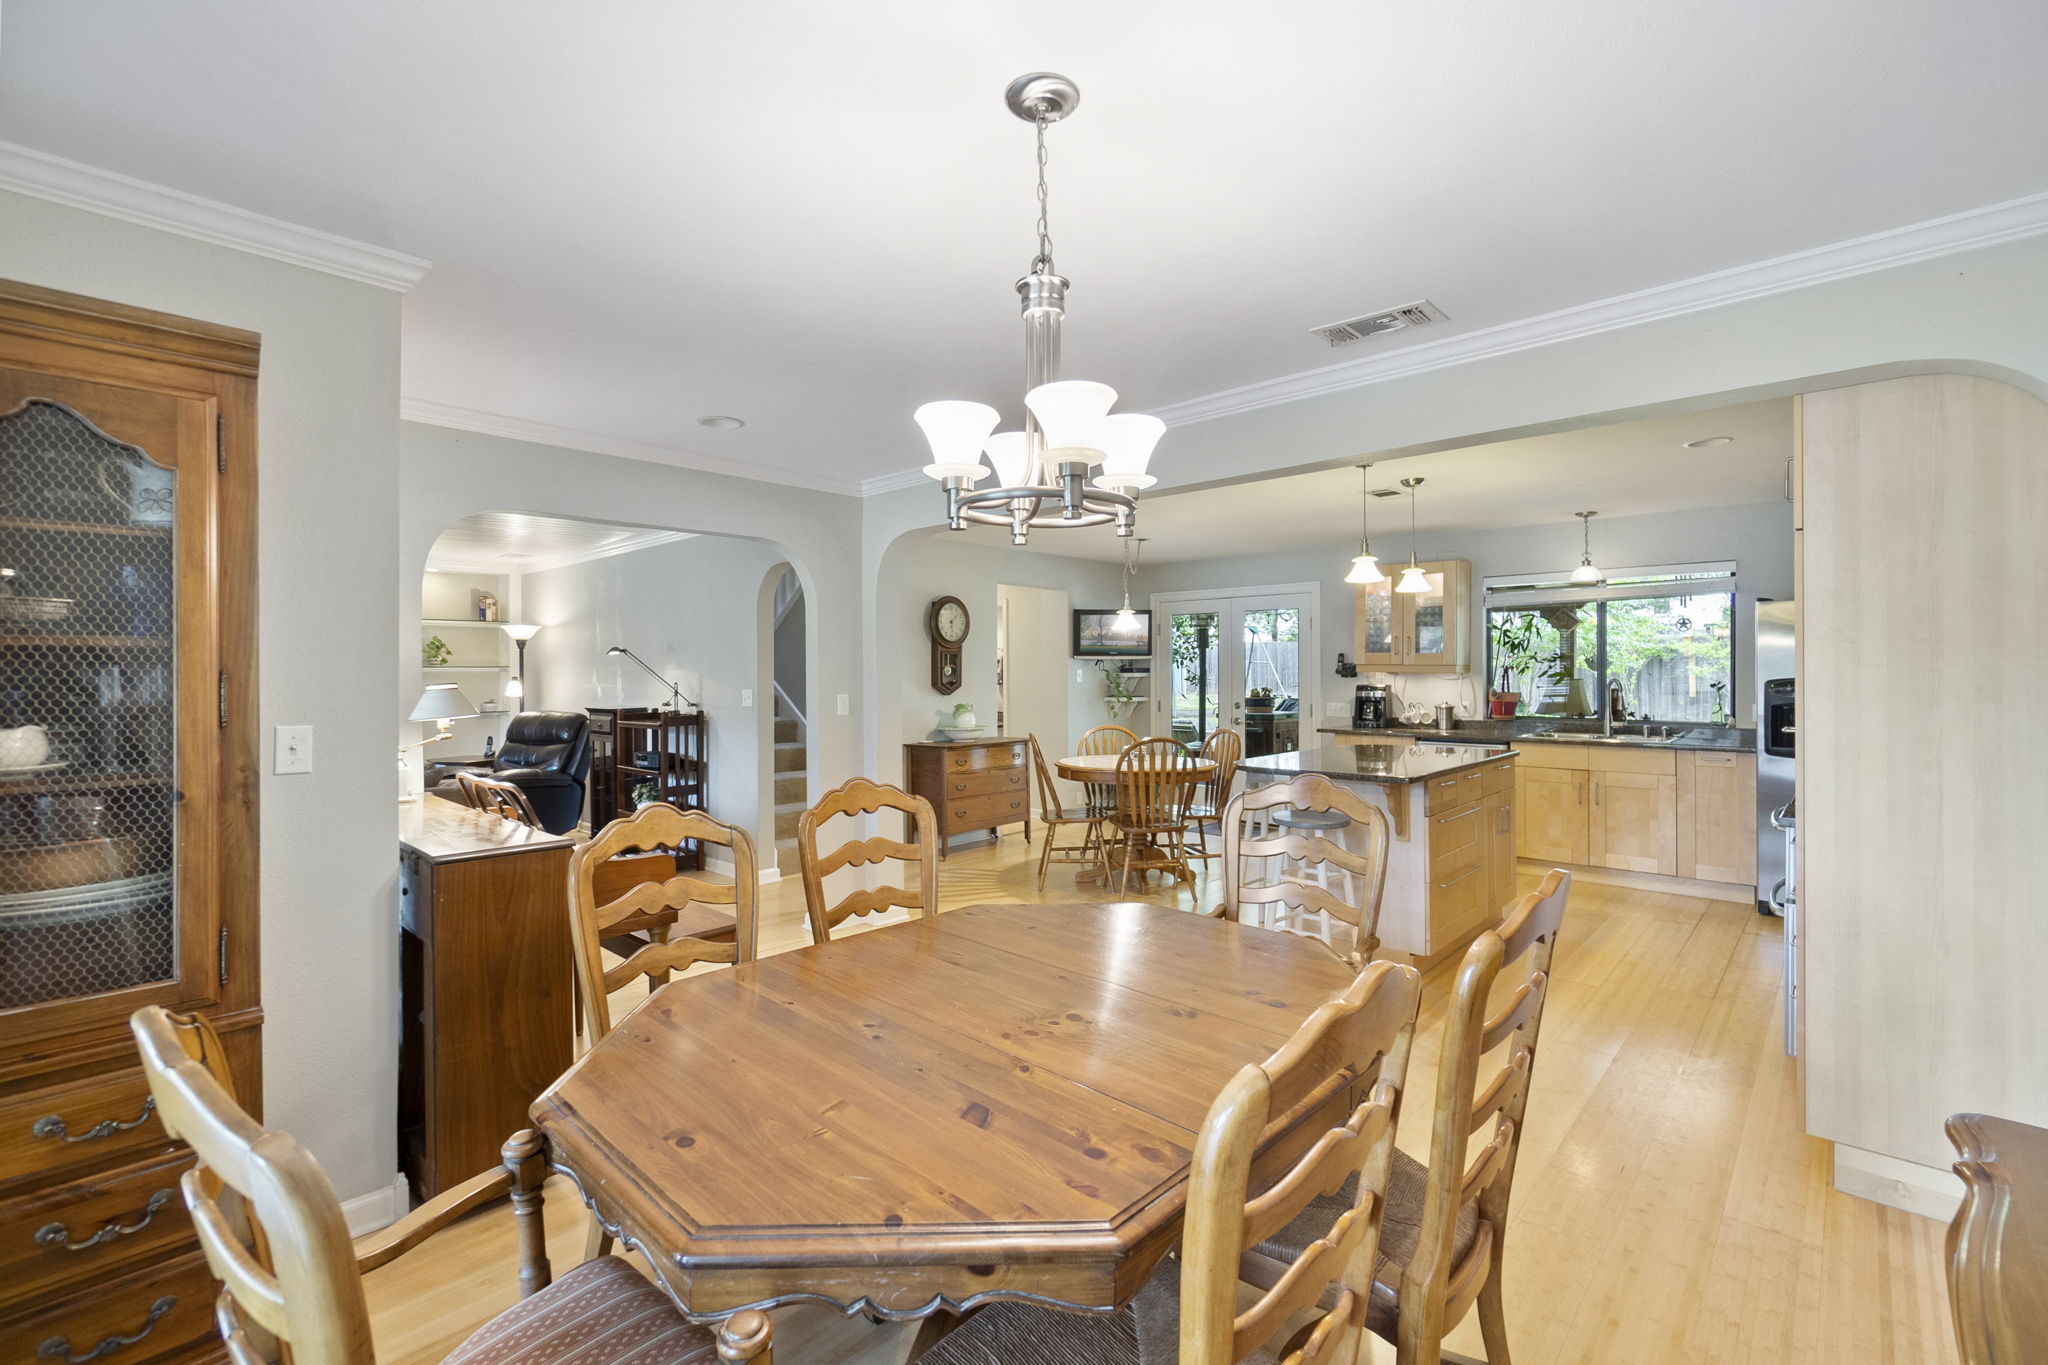 Great sized dining and kitchen area